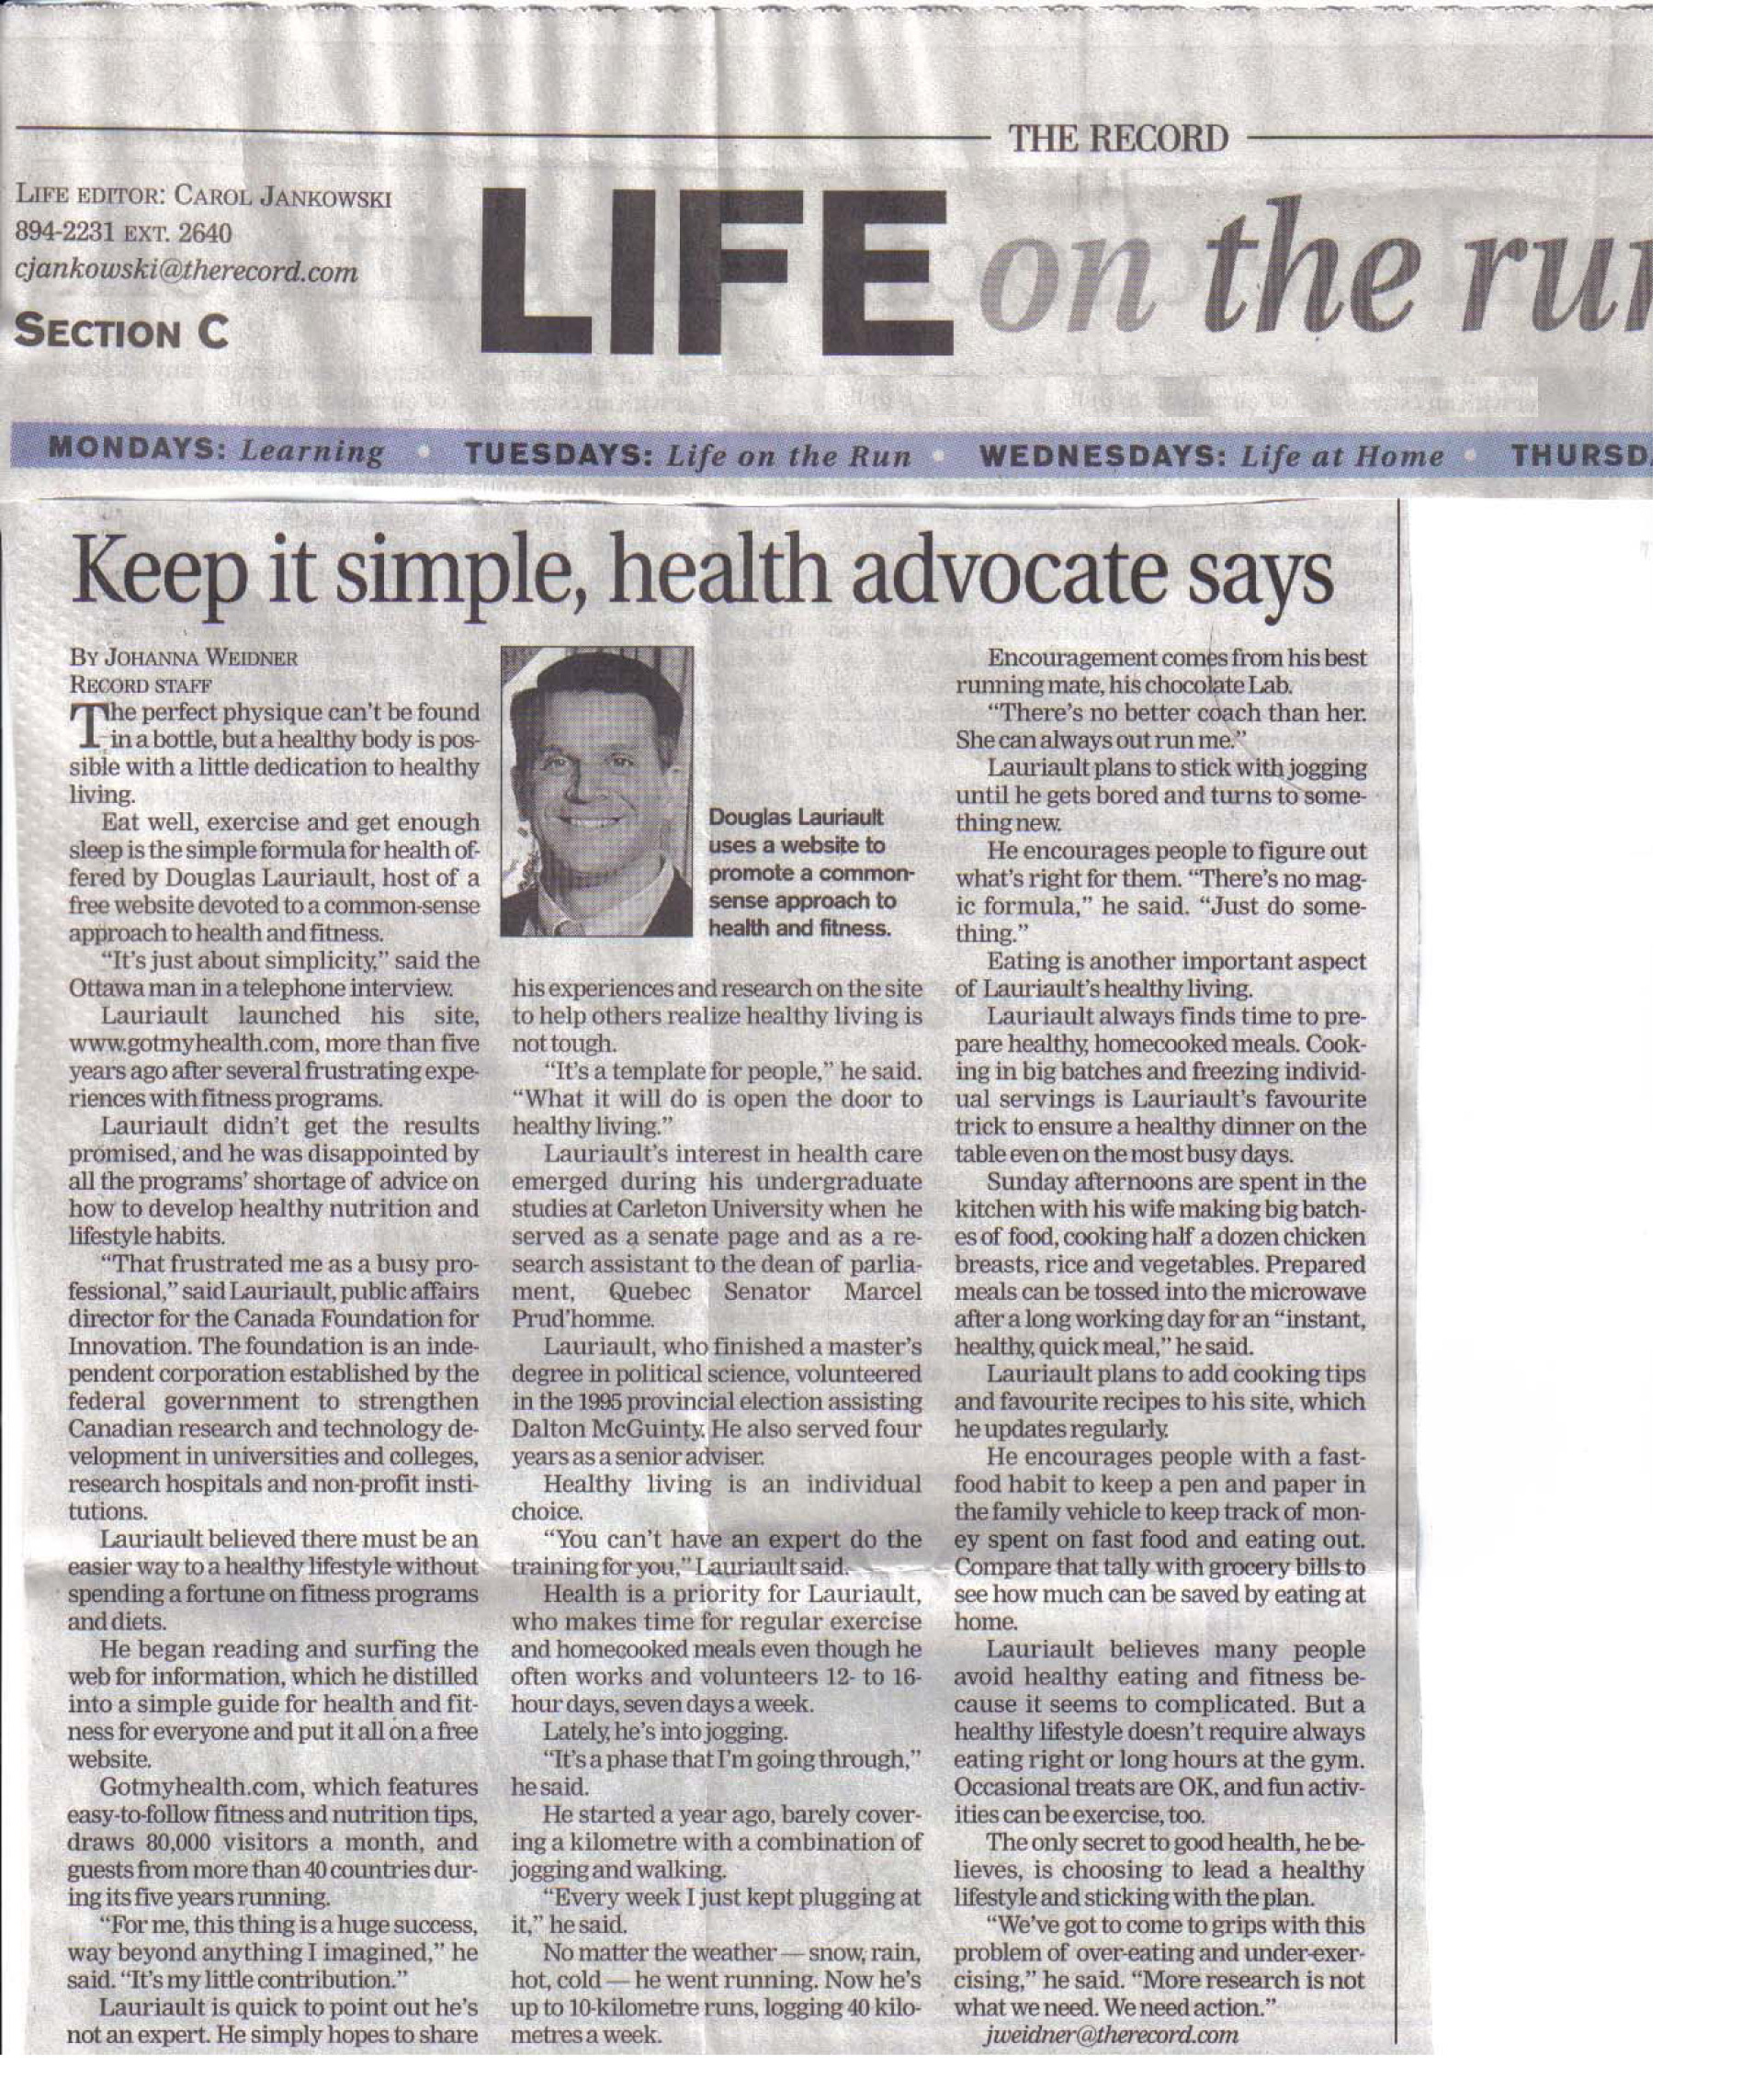 current health articles and reviews through newspapers